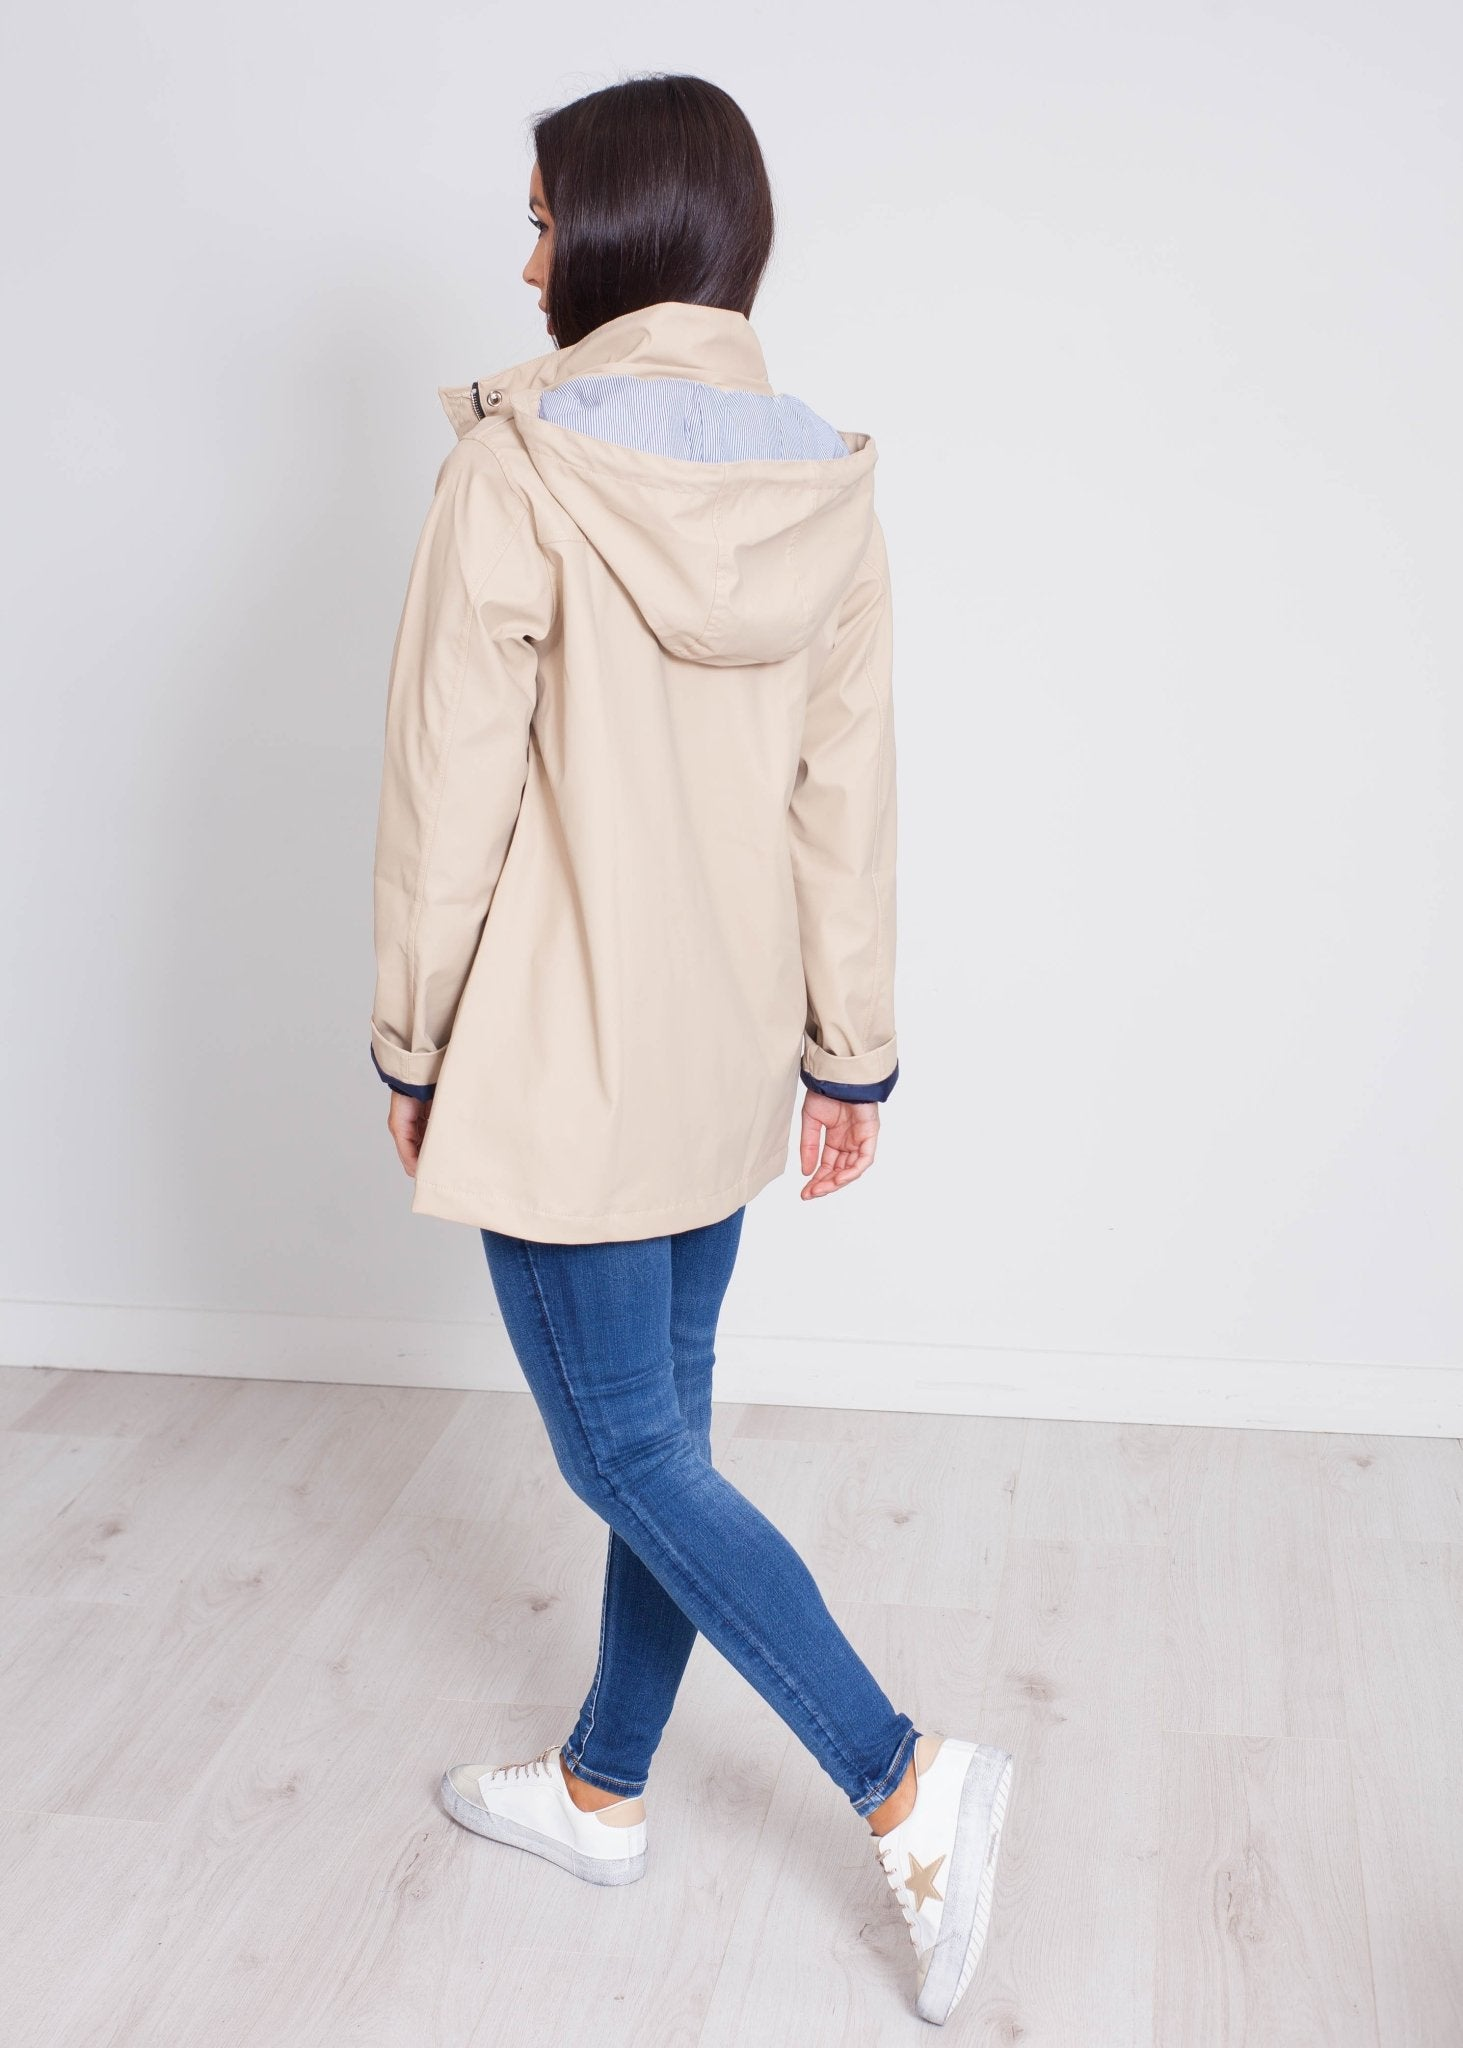 Stella Toggle Raincoat In Latte - The Walk in Wardrobe